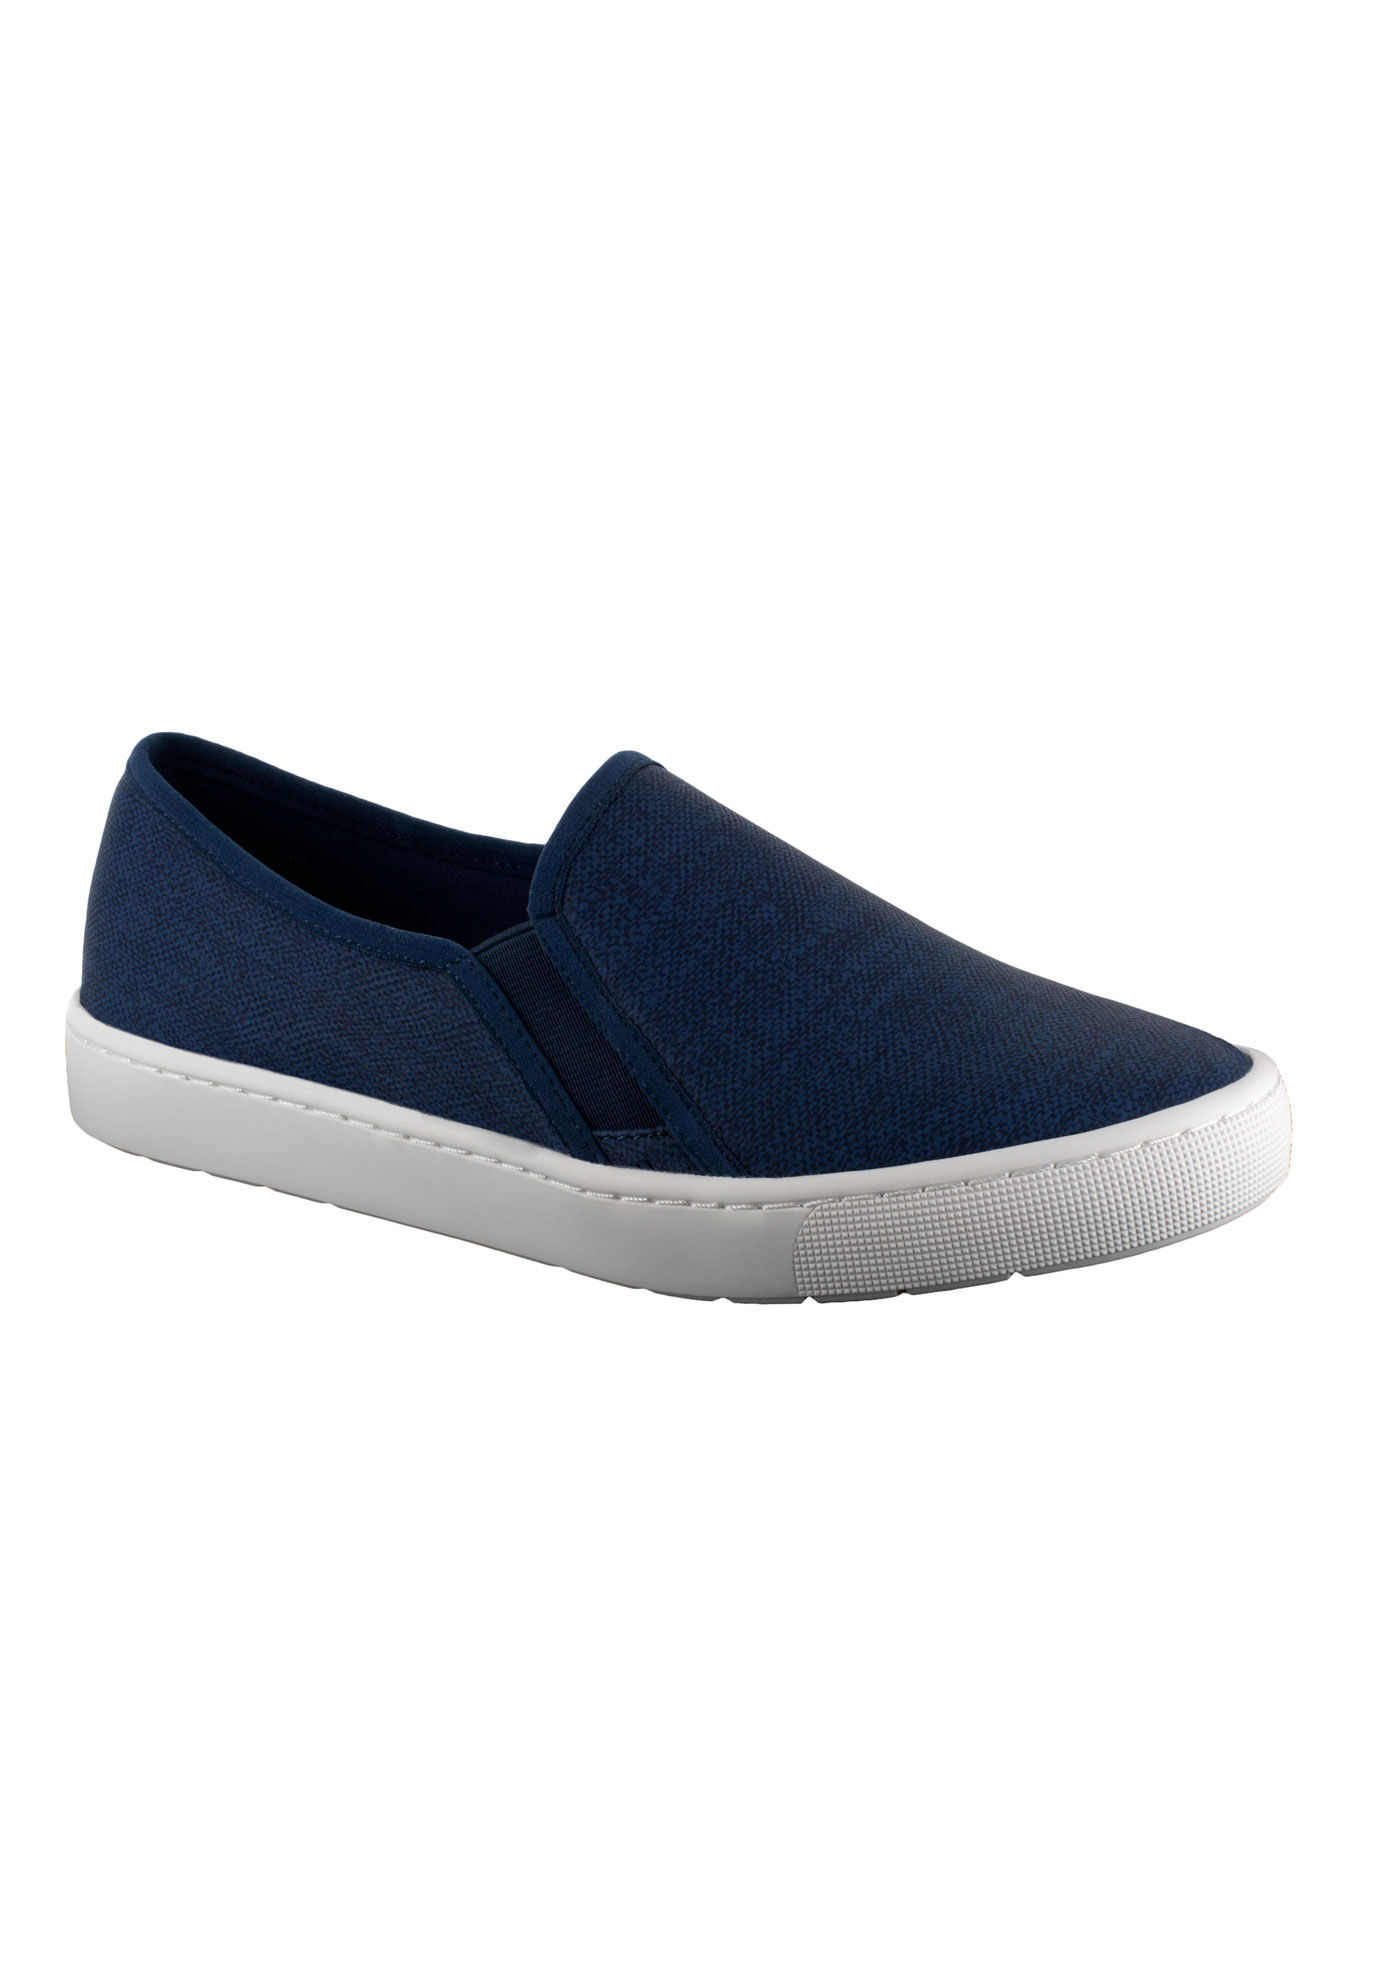 Plaza Slip-Ons by Easy Street®